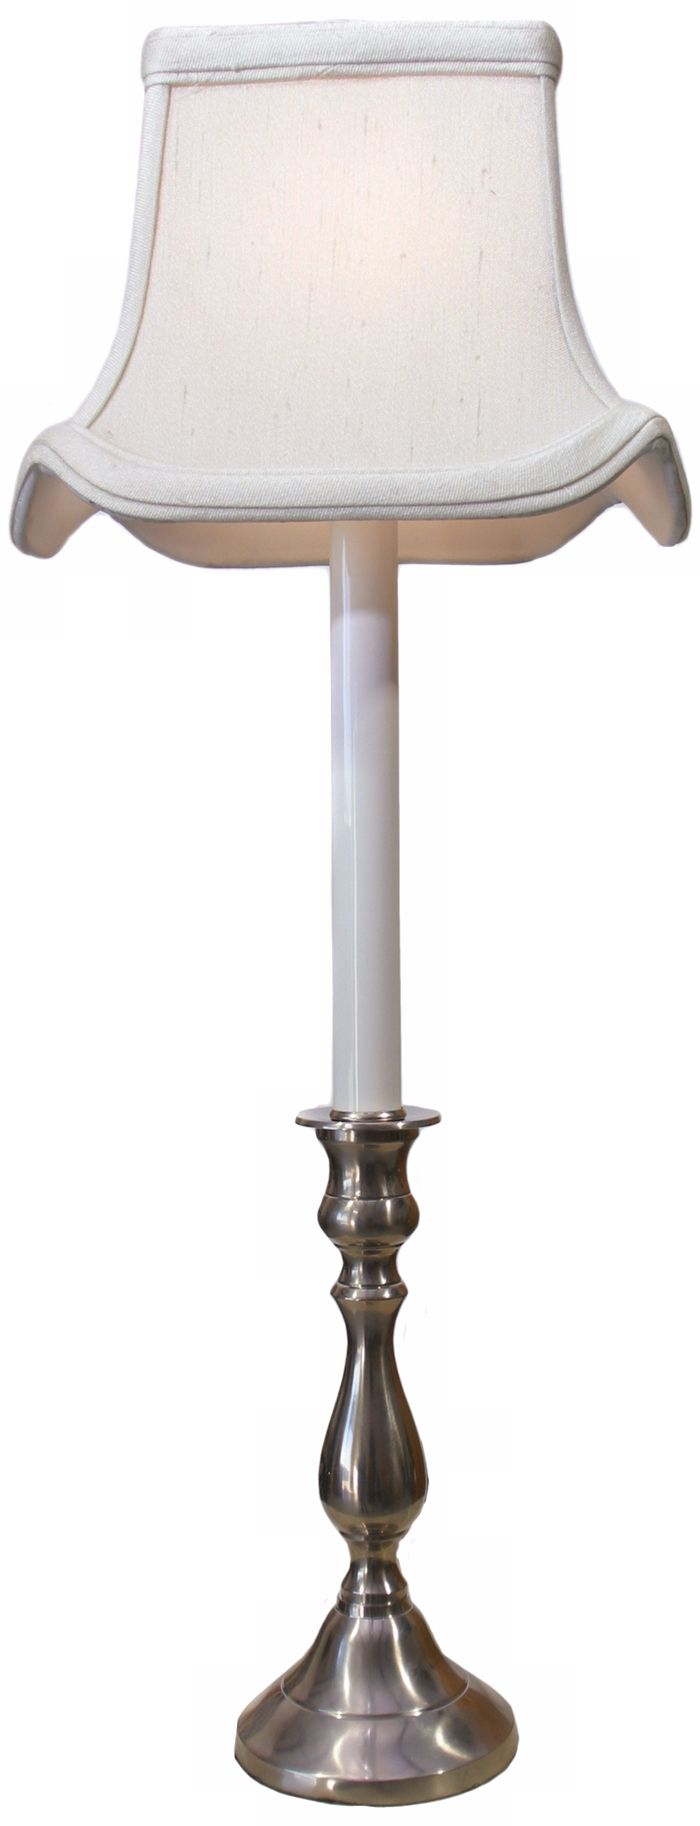 Pewter White Shade Tall Candlestick Table Lamp